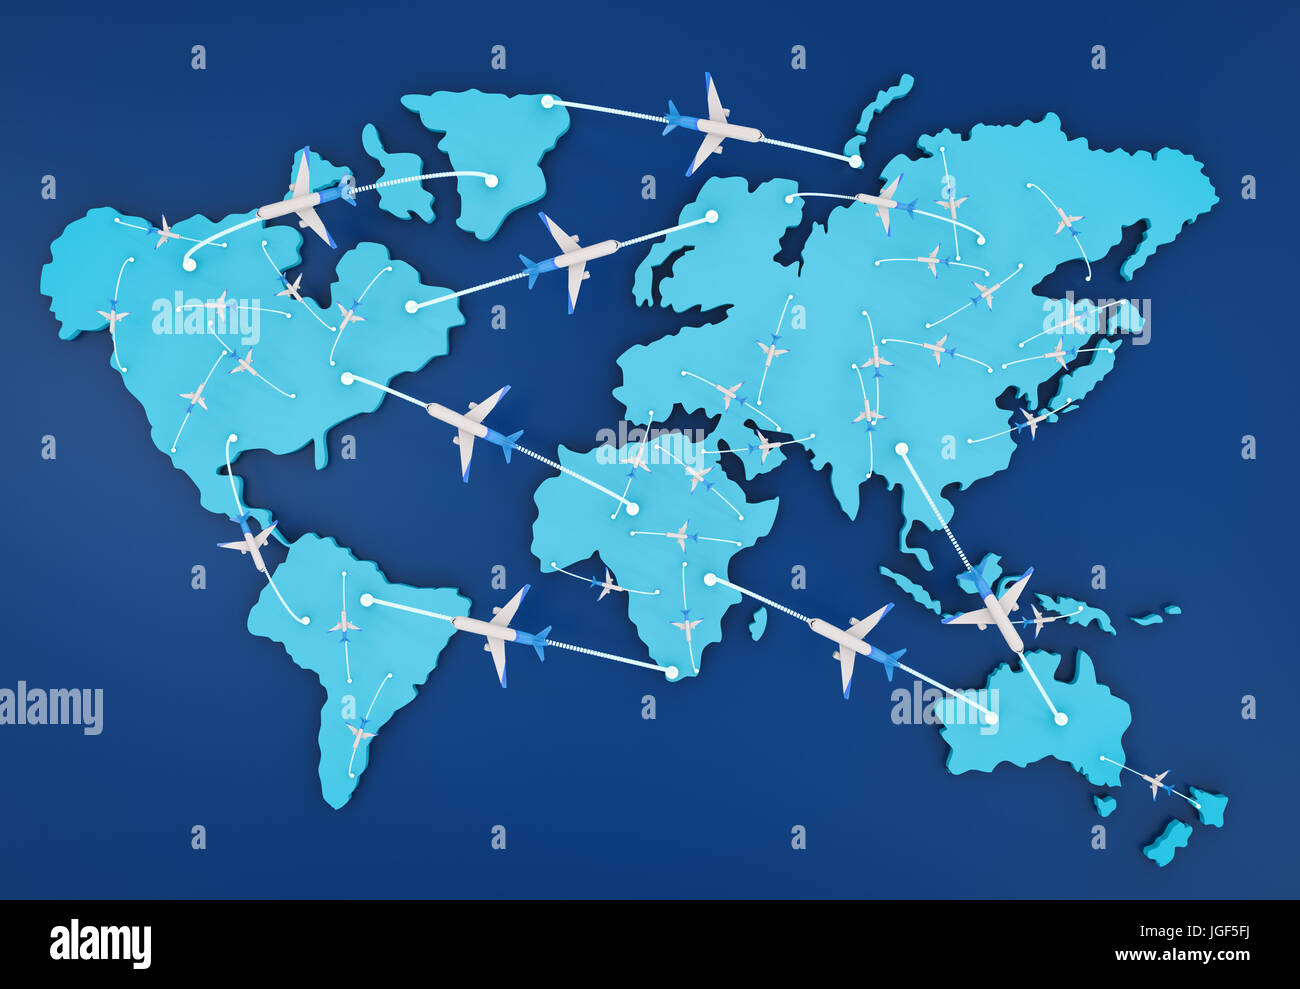 3d rendering flight route with world map Stock Photo ... on transportation route maps, delta airlines international maps, airline flights, shipping route maps, railroad route maps, expressjet route maps, klm route maps, airline malaysia airbus a380, stagecoach route maps, airline british airways, flight route maps, jetblue route maps, airline schedules, delta global route maps, airline fares, airline jobs, air route maps, tour operator route maps,